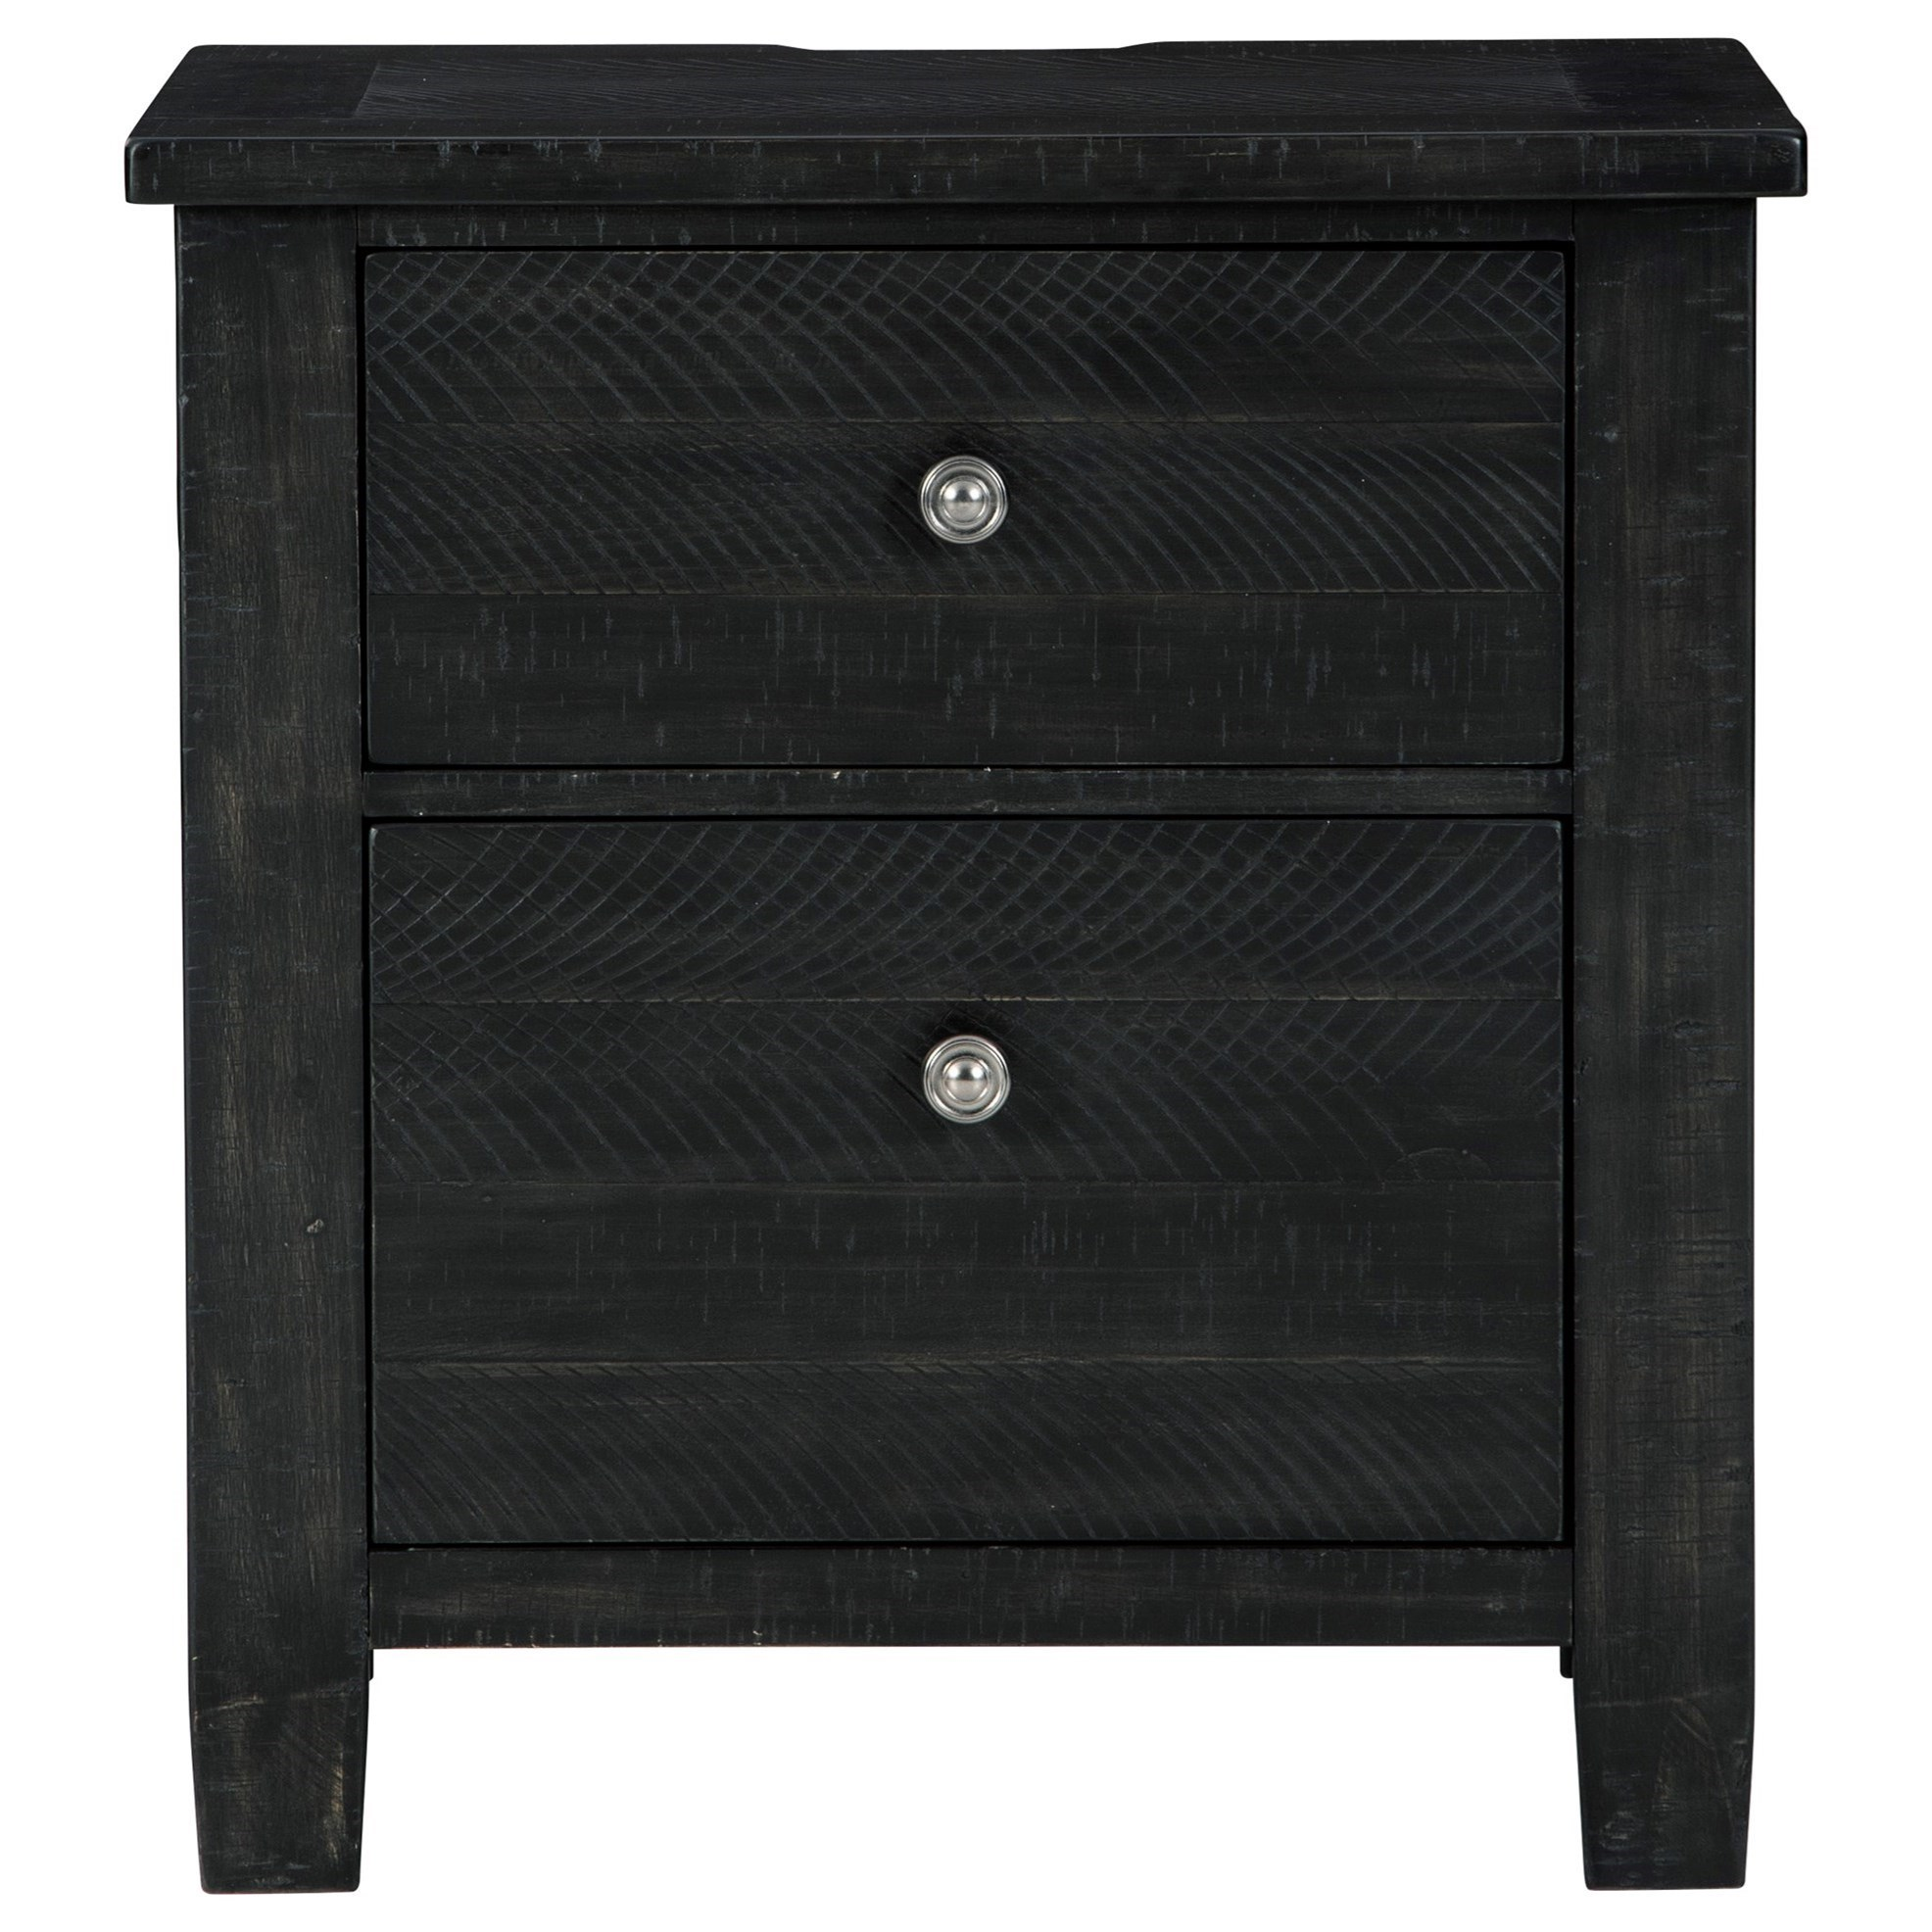 Rustic 2-Drawer Nightstand in Black Finish with Outlets and USB Charging